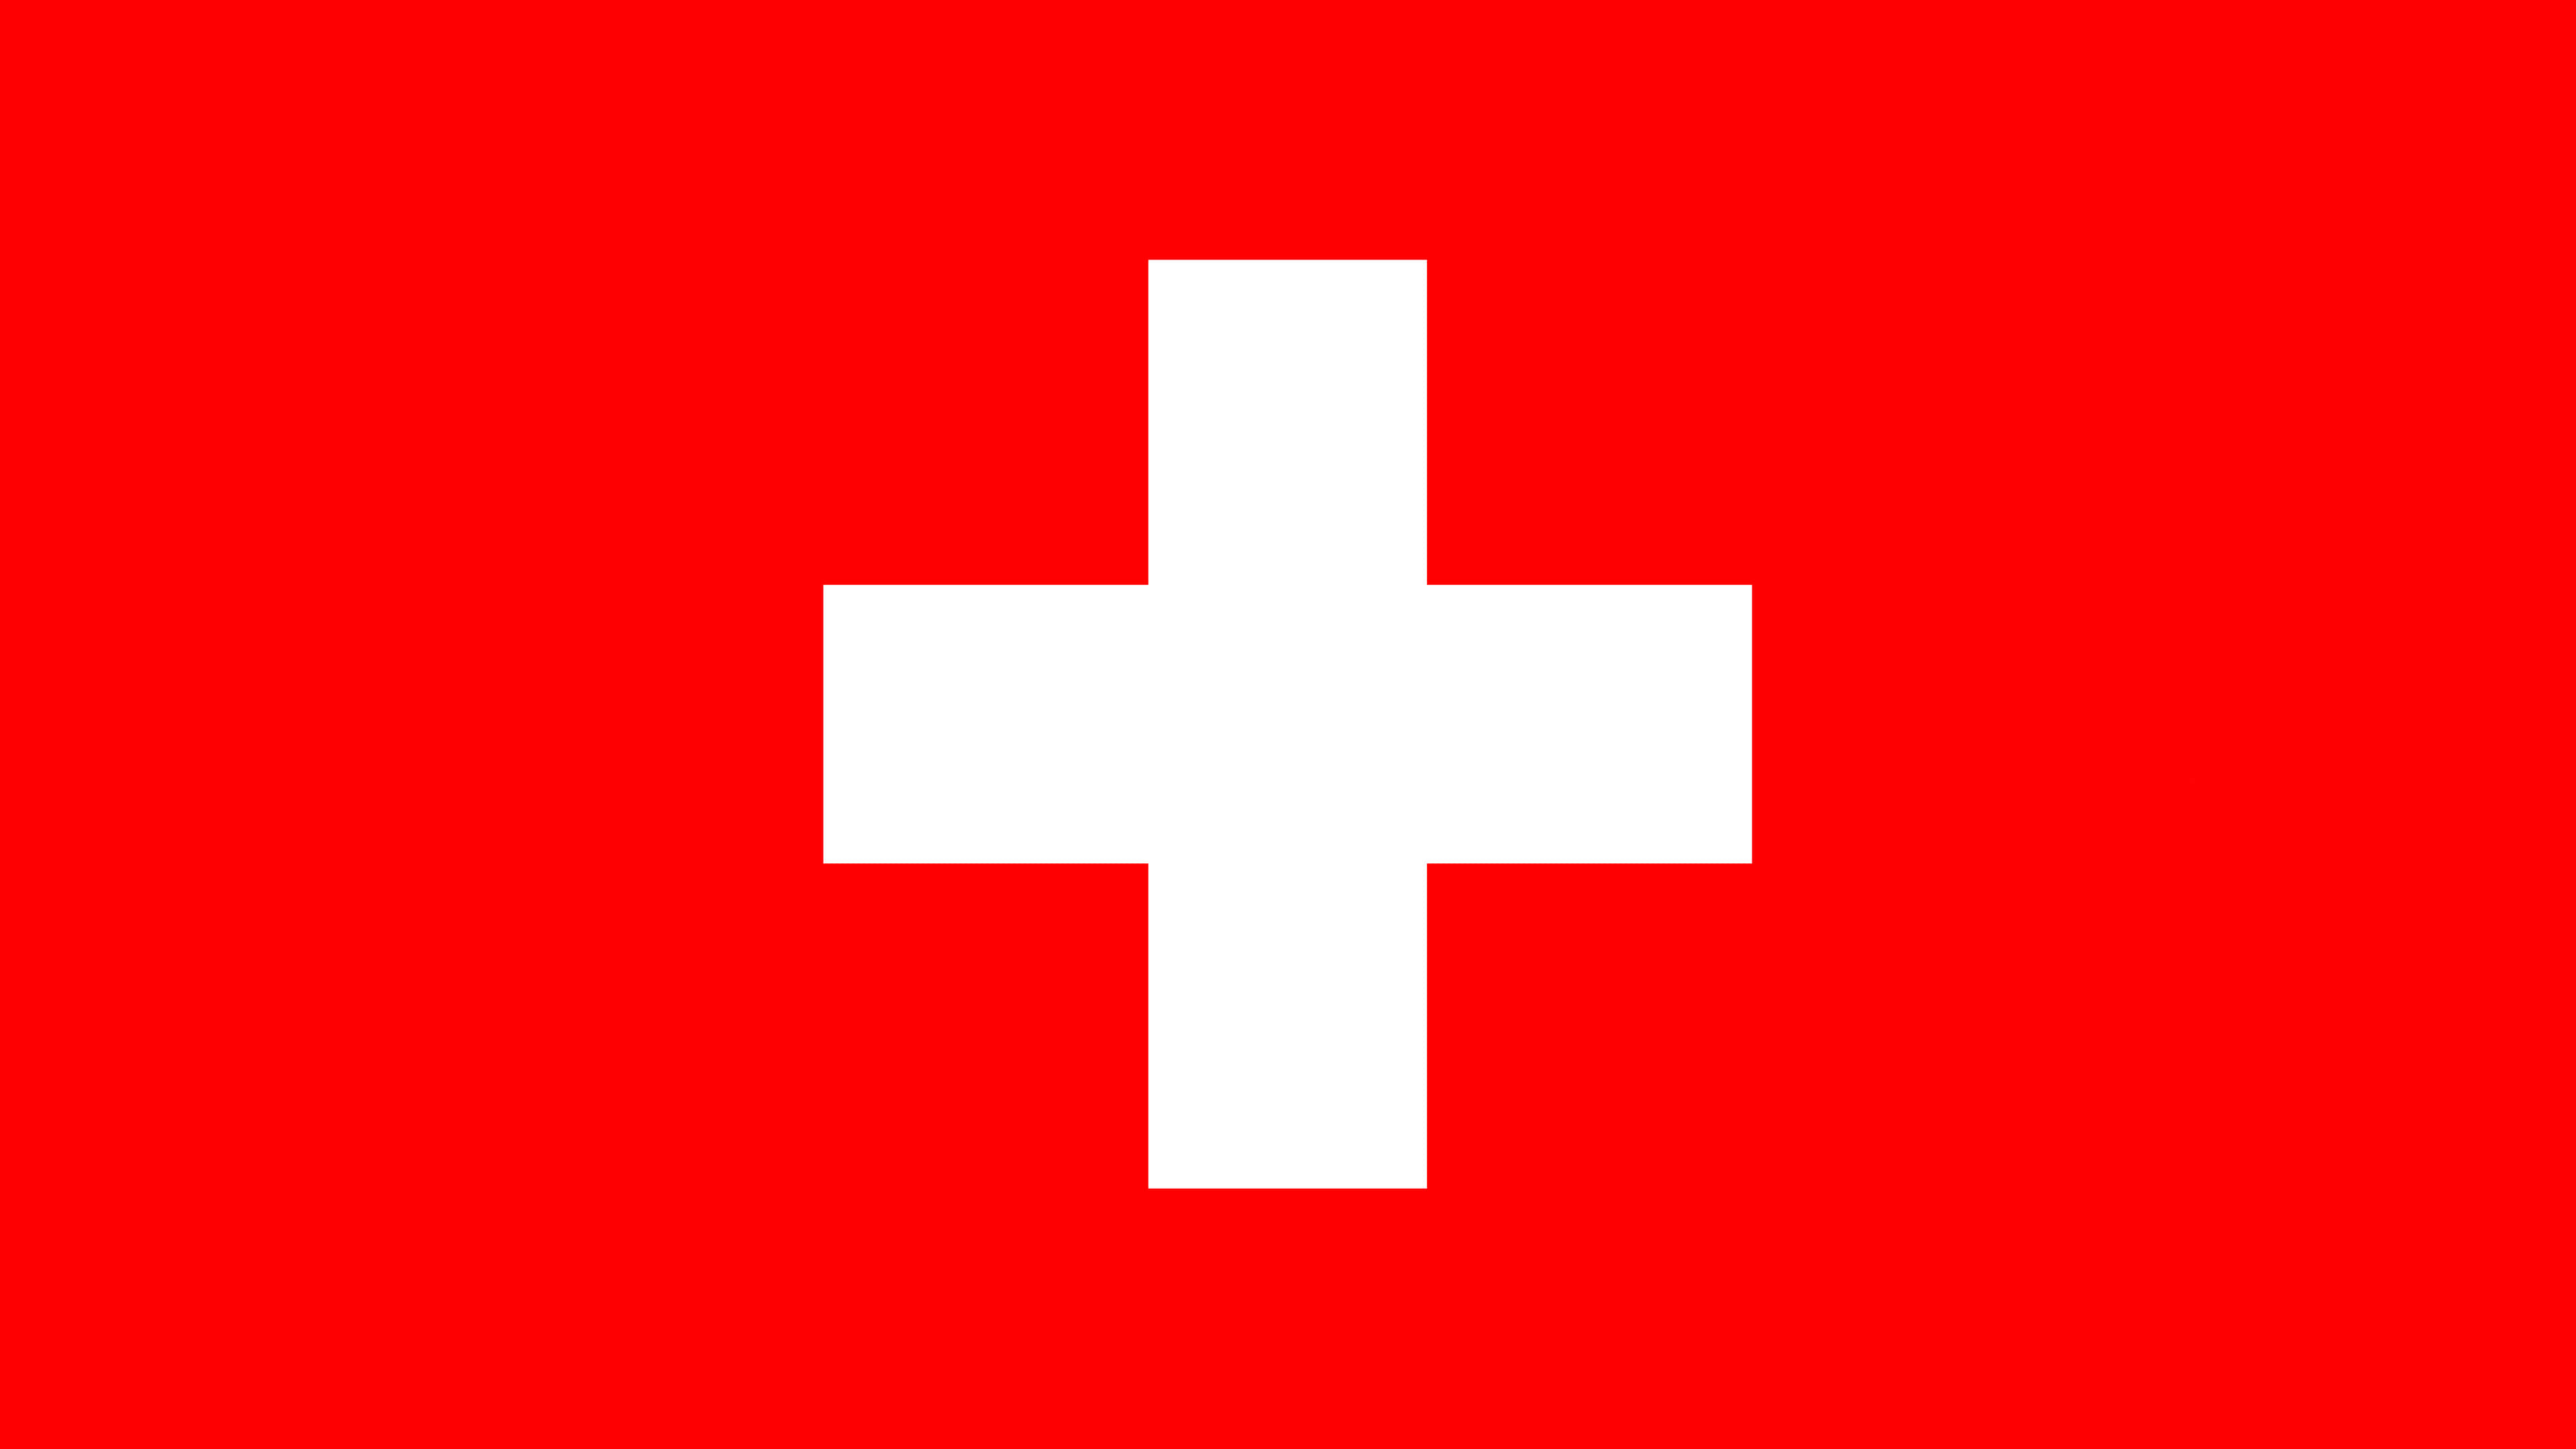 switzerland flag uhd 4k wallpaper